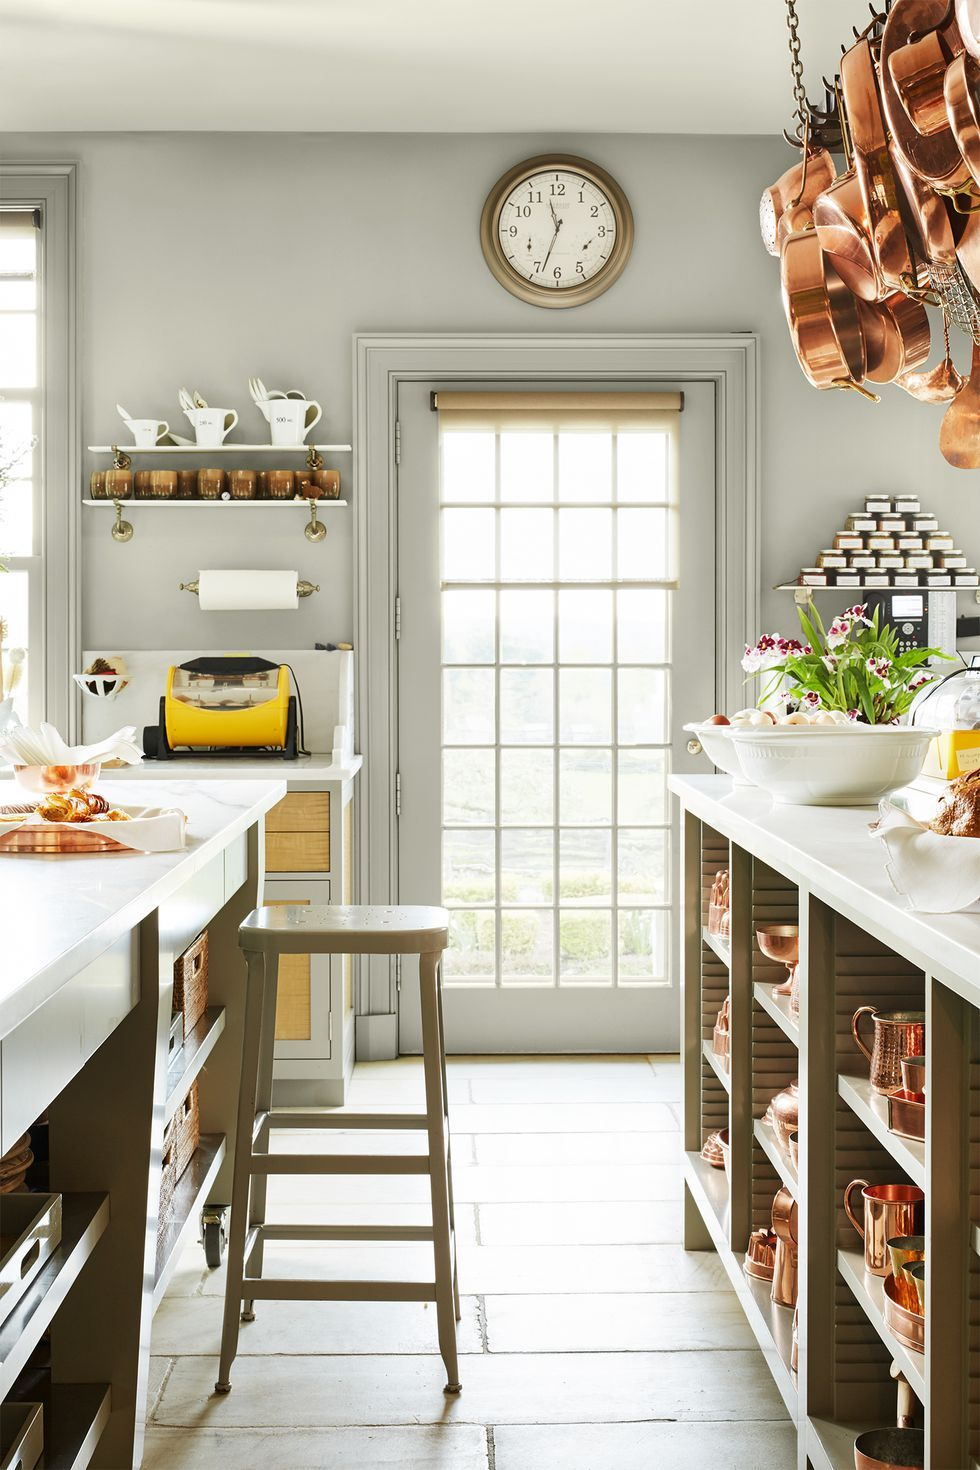 12 Kitchen Color Ideas - Best Kitchen Paint Color Schemes